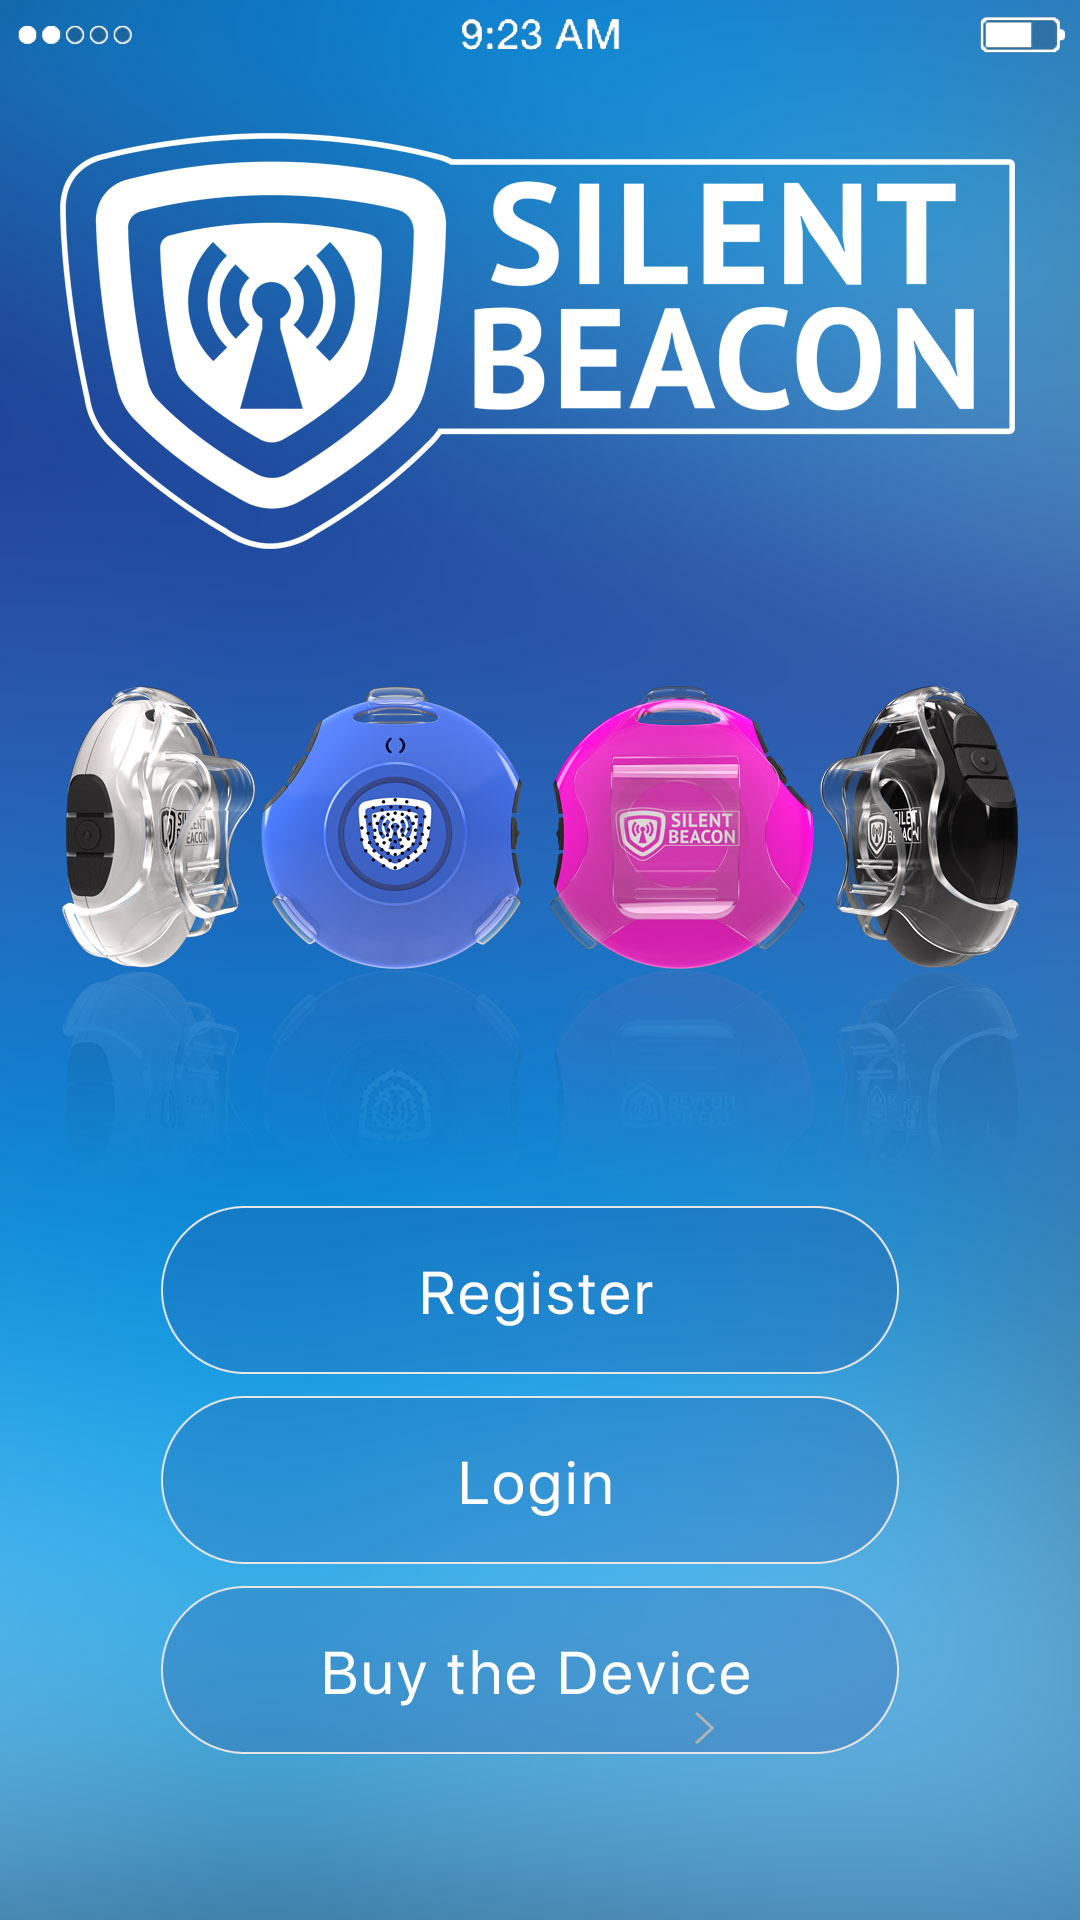 Safety App and Emergency Alert App with a Panic Button | Silent Beacon